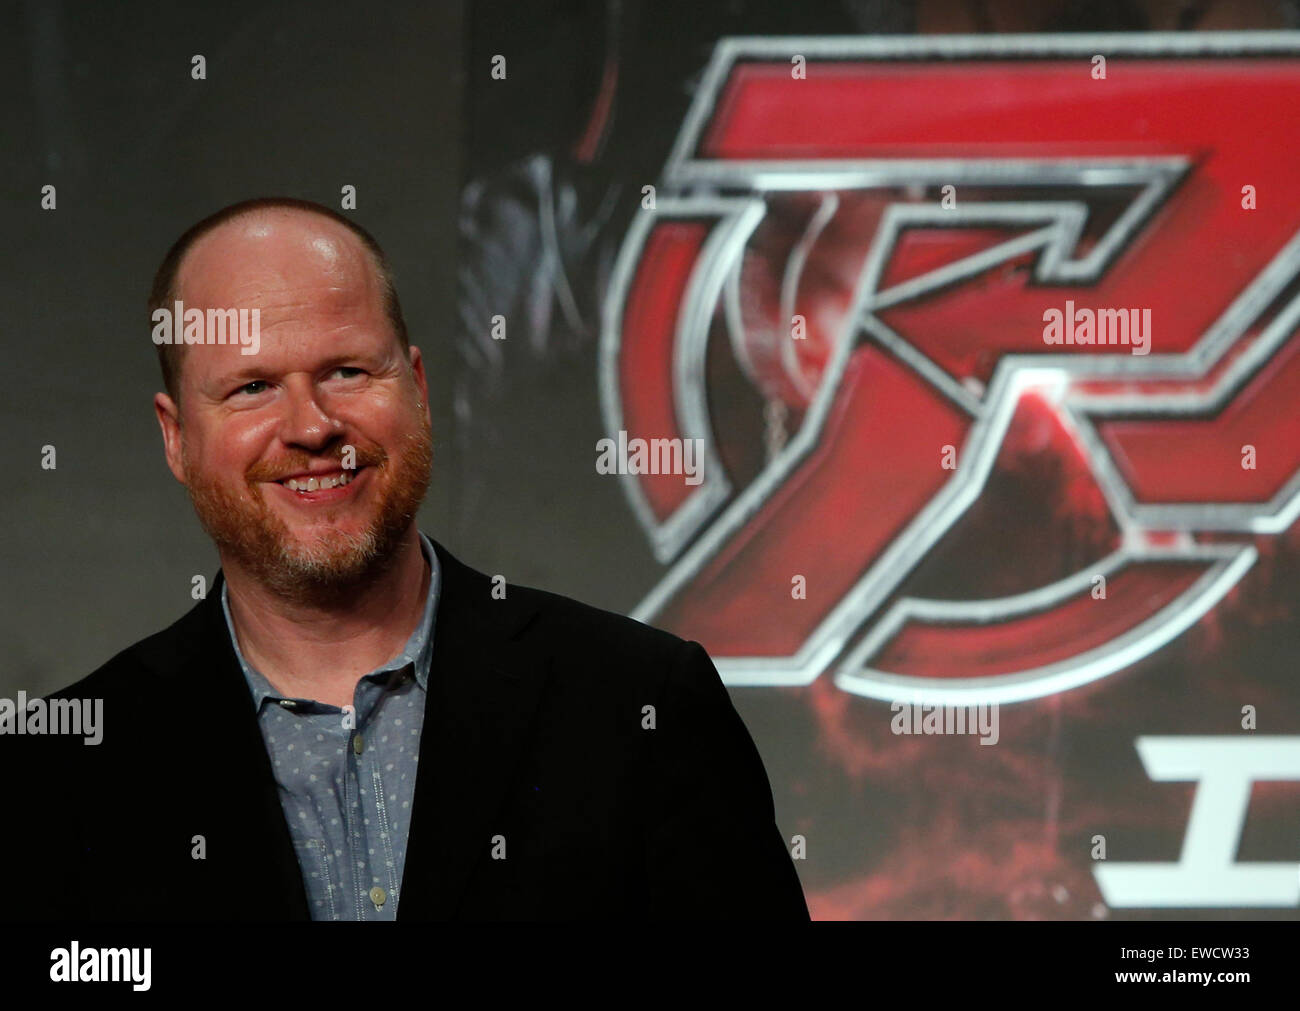 """Tokyo, Japan. 23rd June, 2015. Film director Joss Whedon attends a premiere event for his new film """"Avengers: Age Stock Photo"""